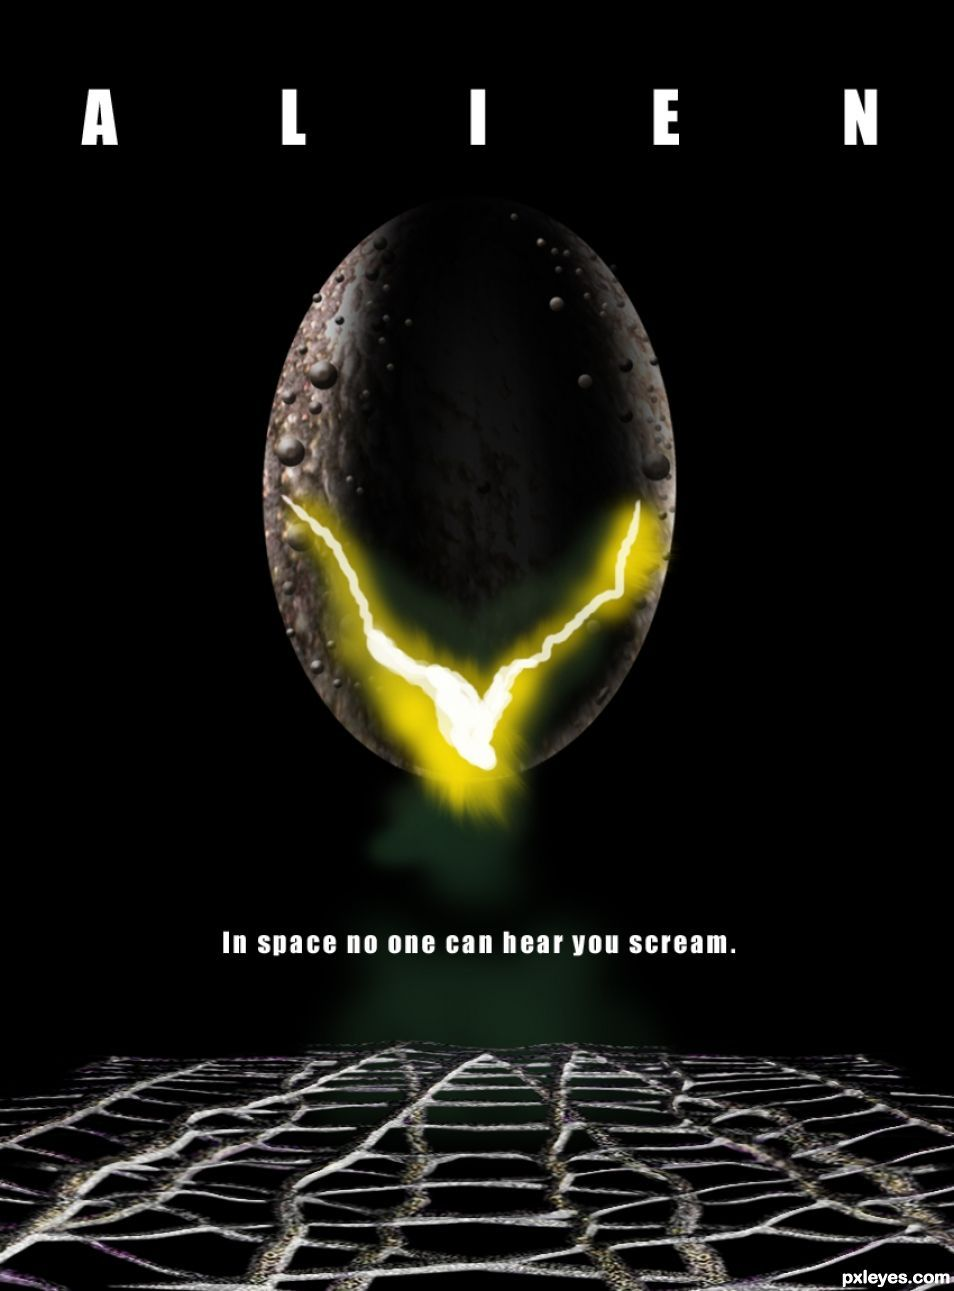 This 1979 movie practically invented space horror and is just as unsettling as the H. R. Giger artwork it originated from. Chaos ensues when the crew of starship Nostromo encounters an alien egg nest inside an alien vessel…